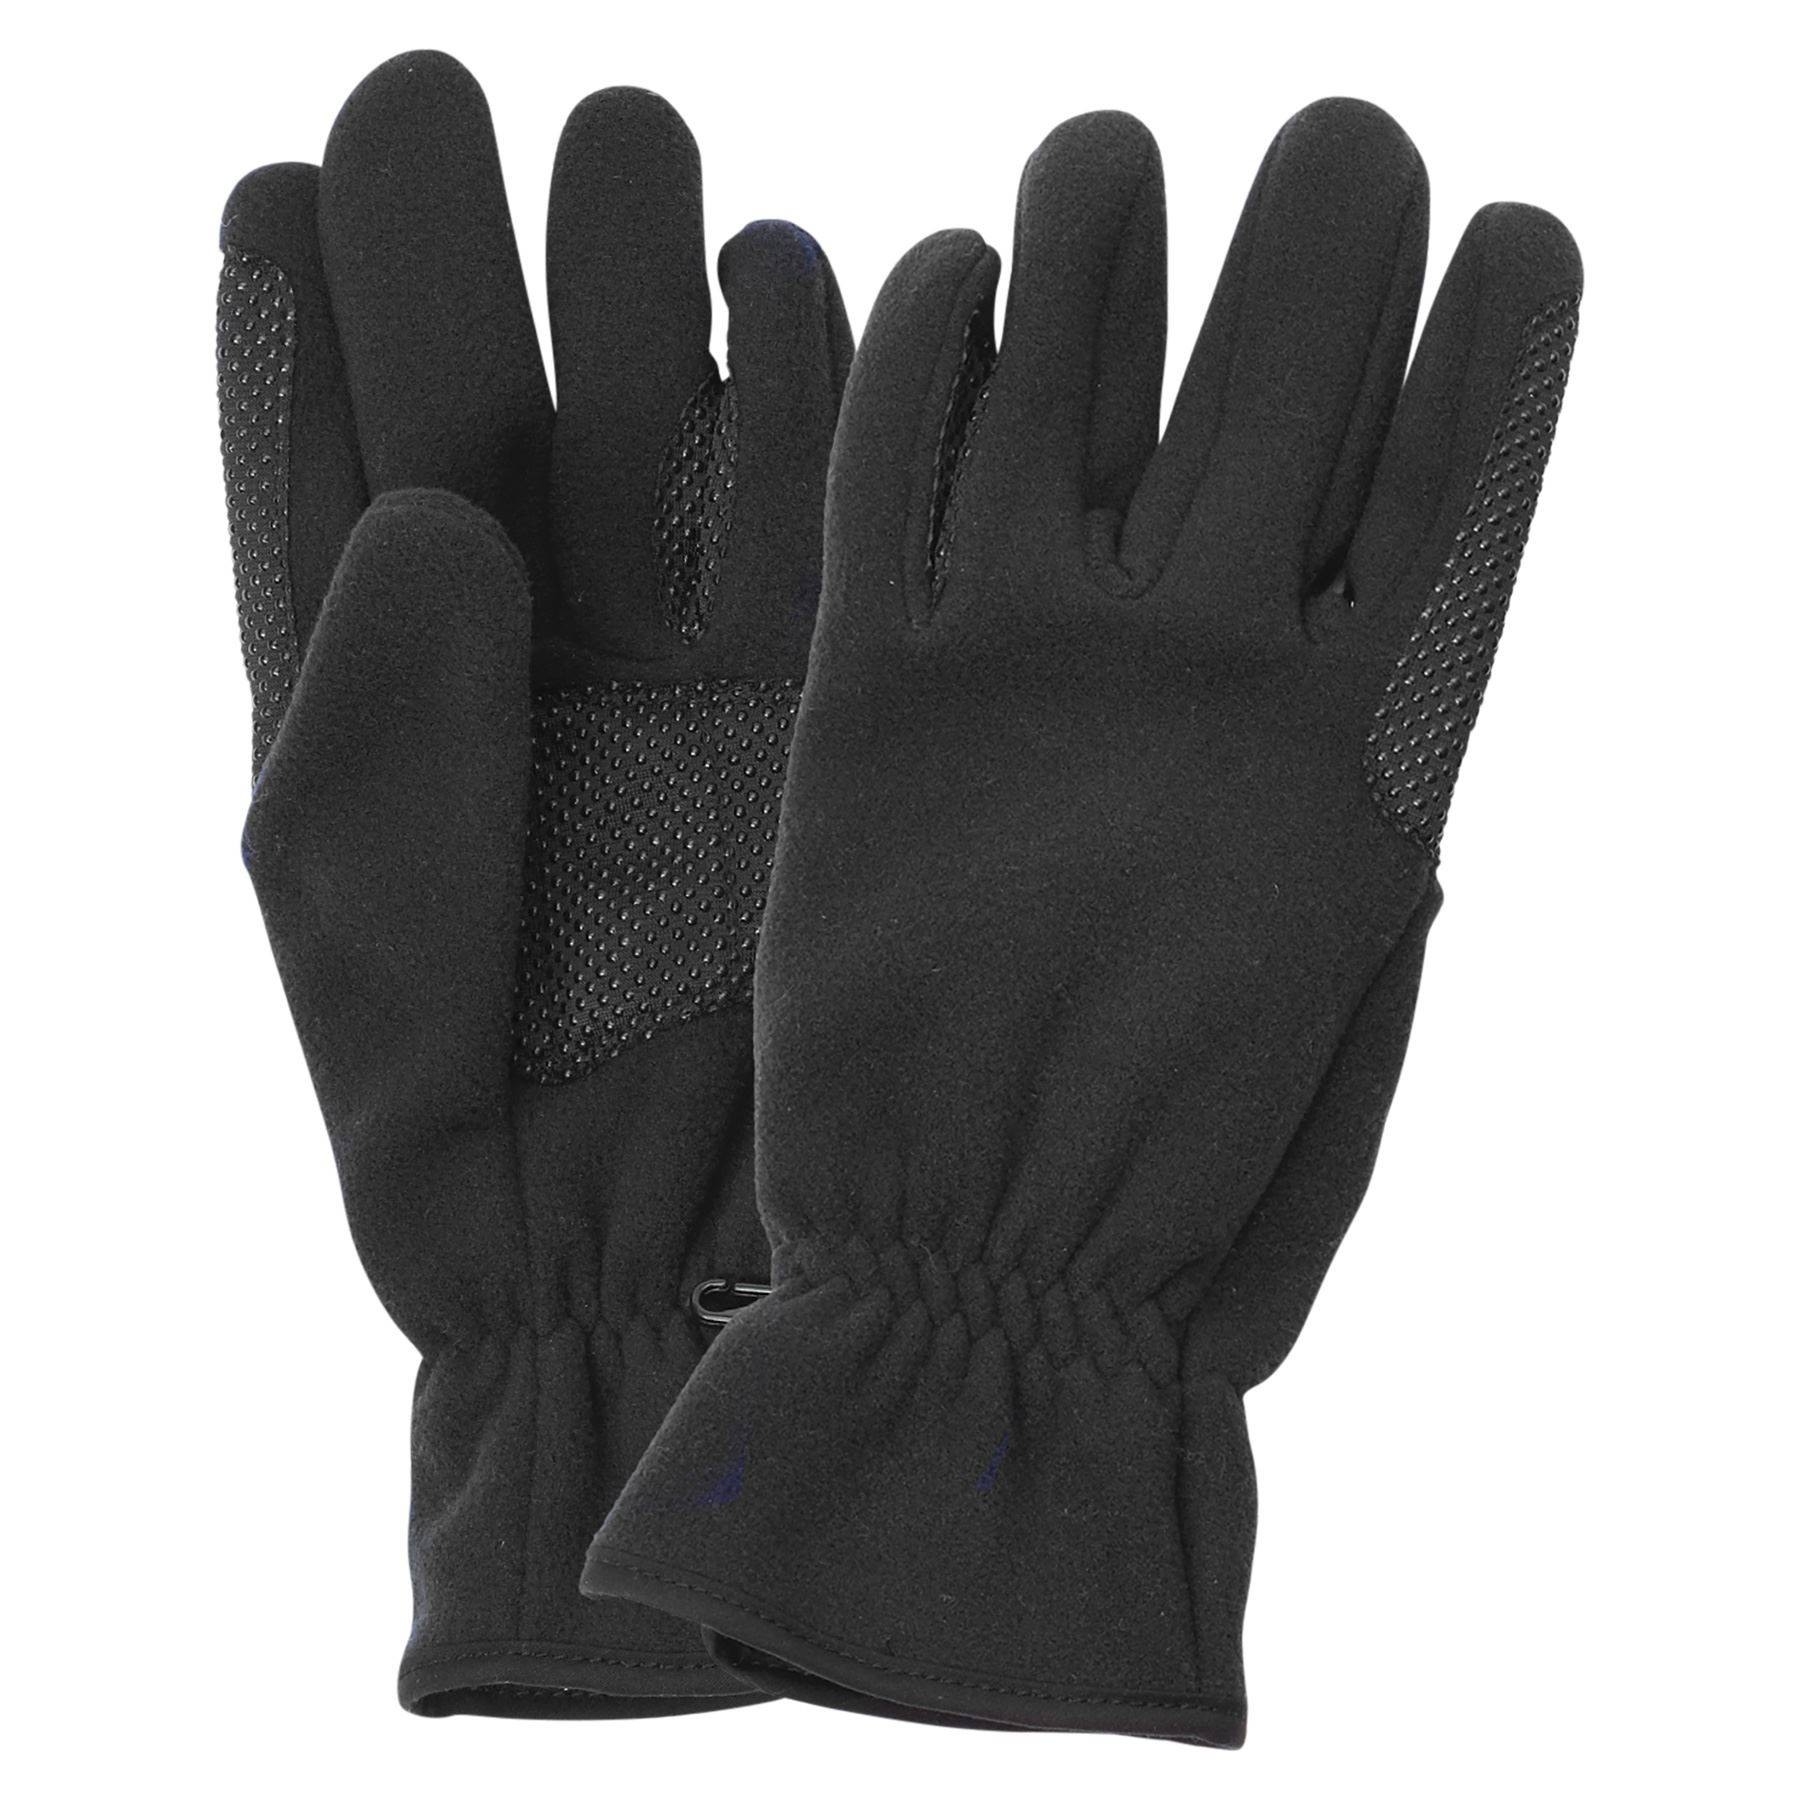 Equi-Star Fleece Glove